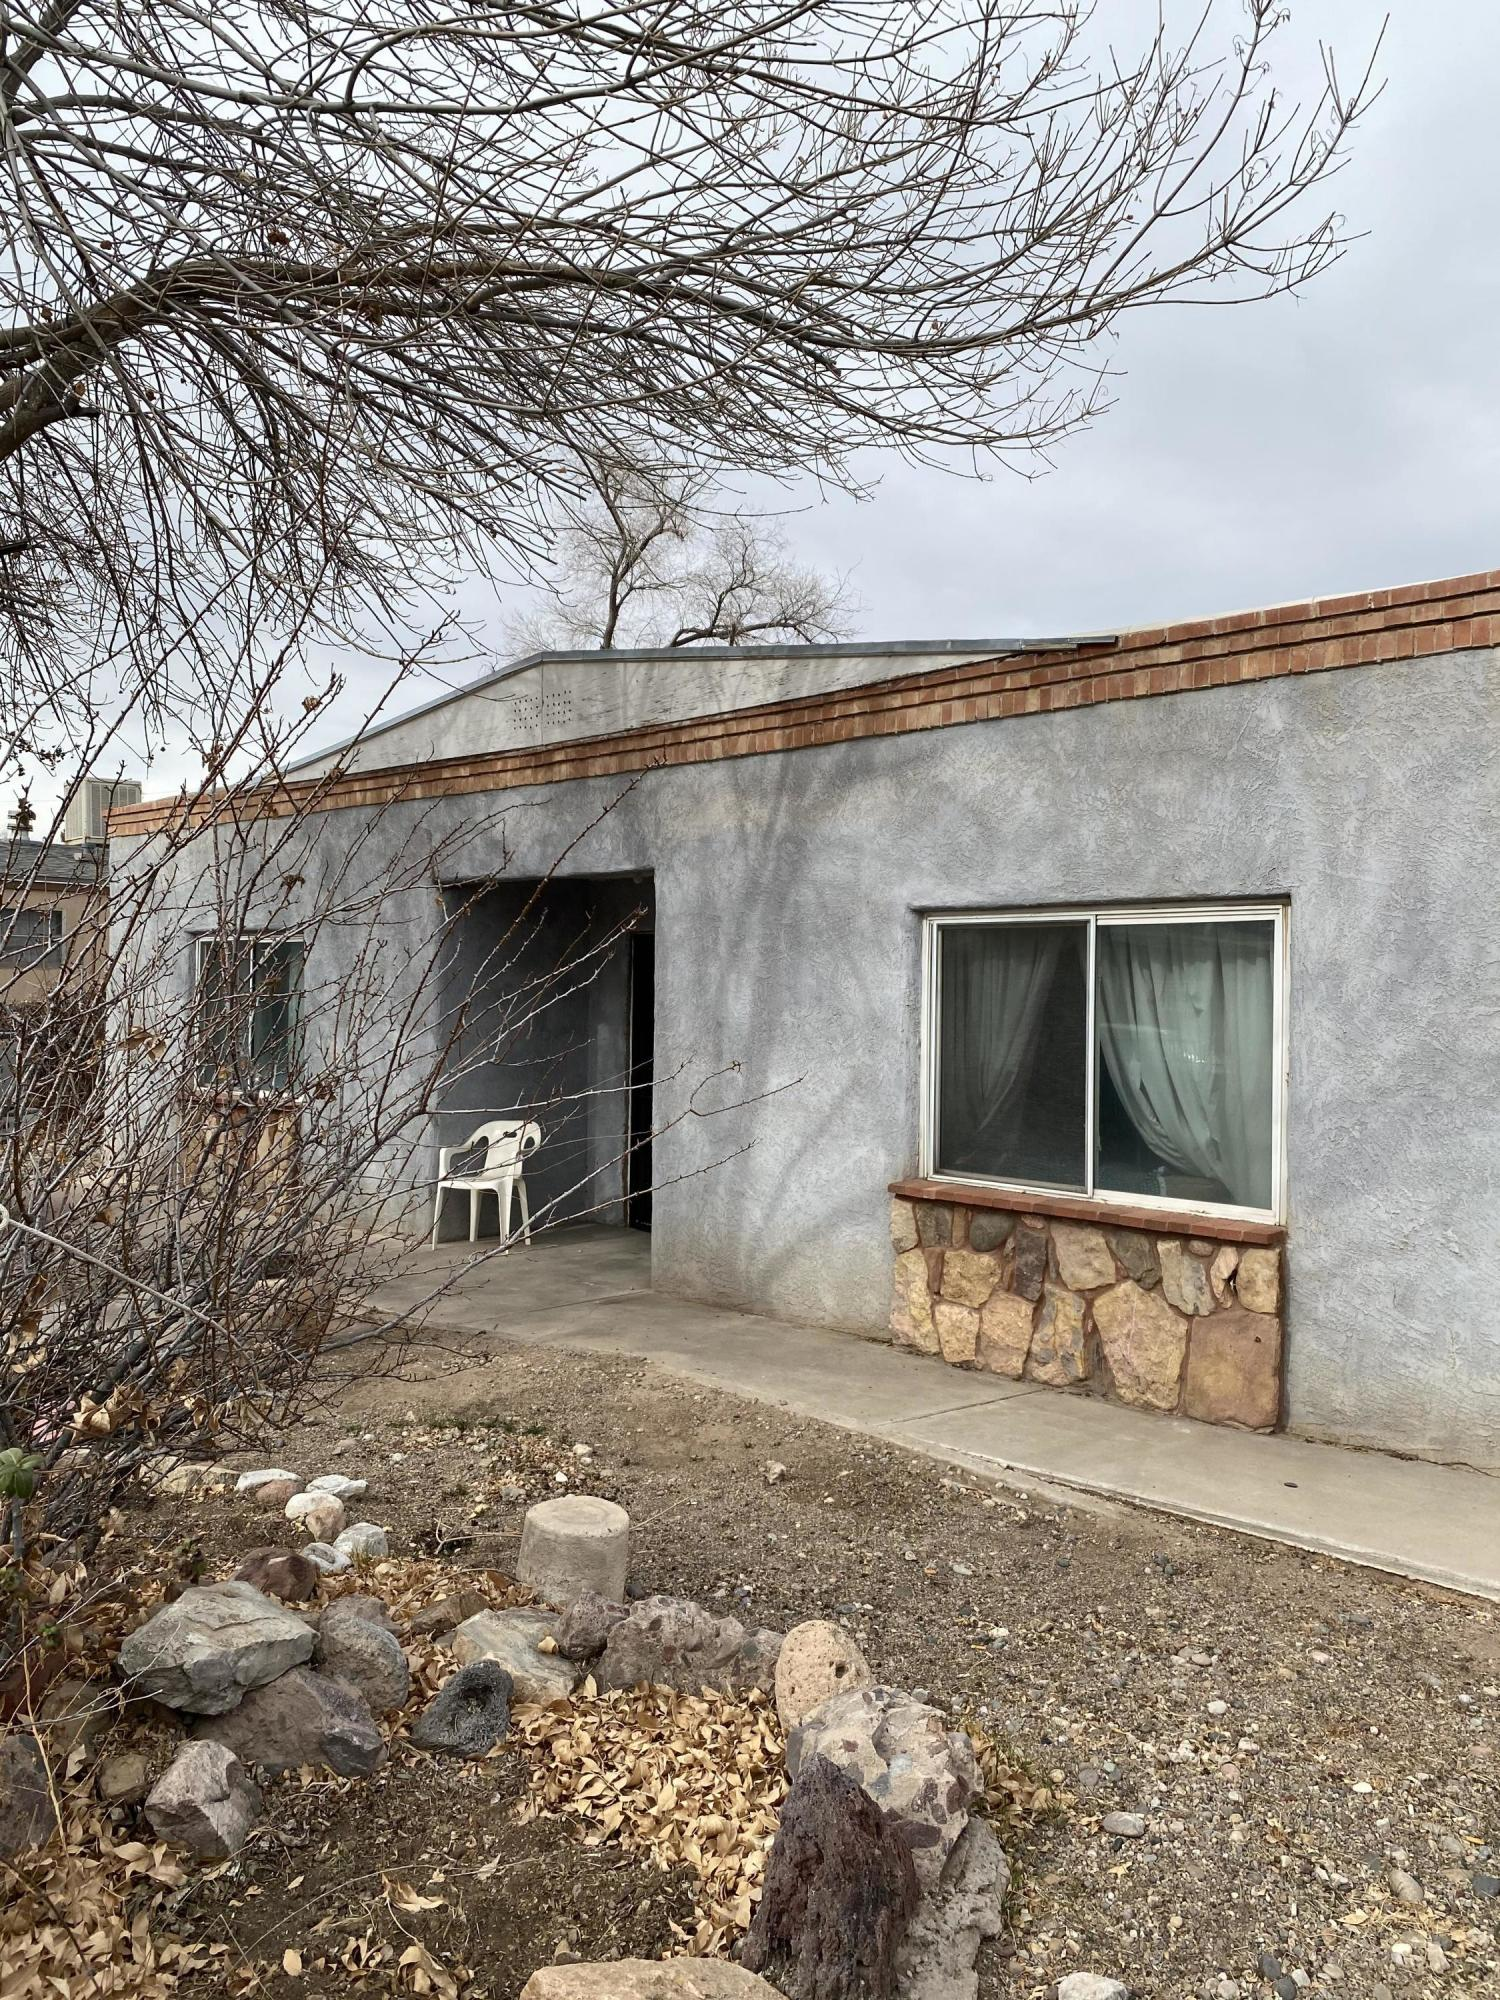 Clean solid livable fixer upper.Never been a rental.Backyard access.TPO roof about 6 years old.Hardwood under carpets in living room, dining room and hallway.Good sized Bedrooms.One Bathroom. Formal Dining room.Good sized living room too.